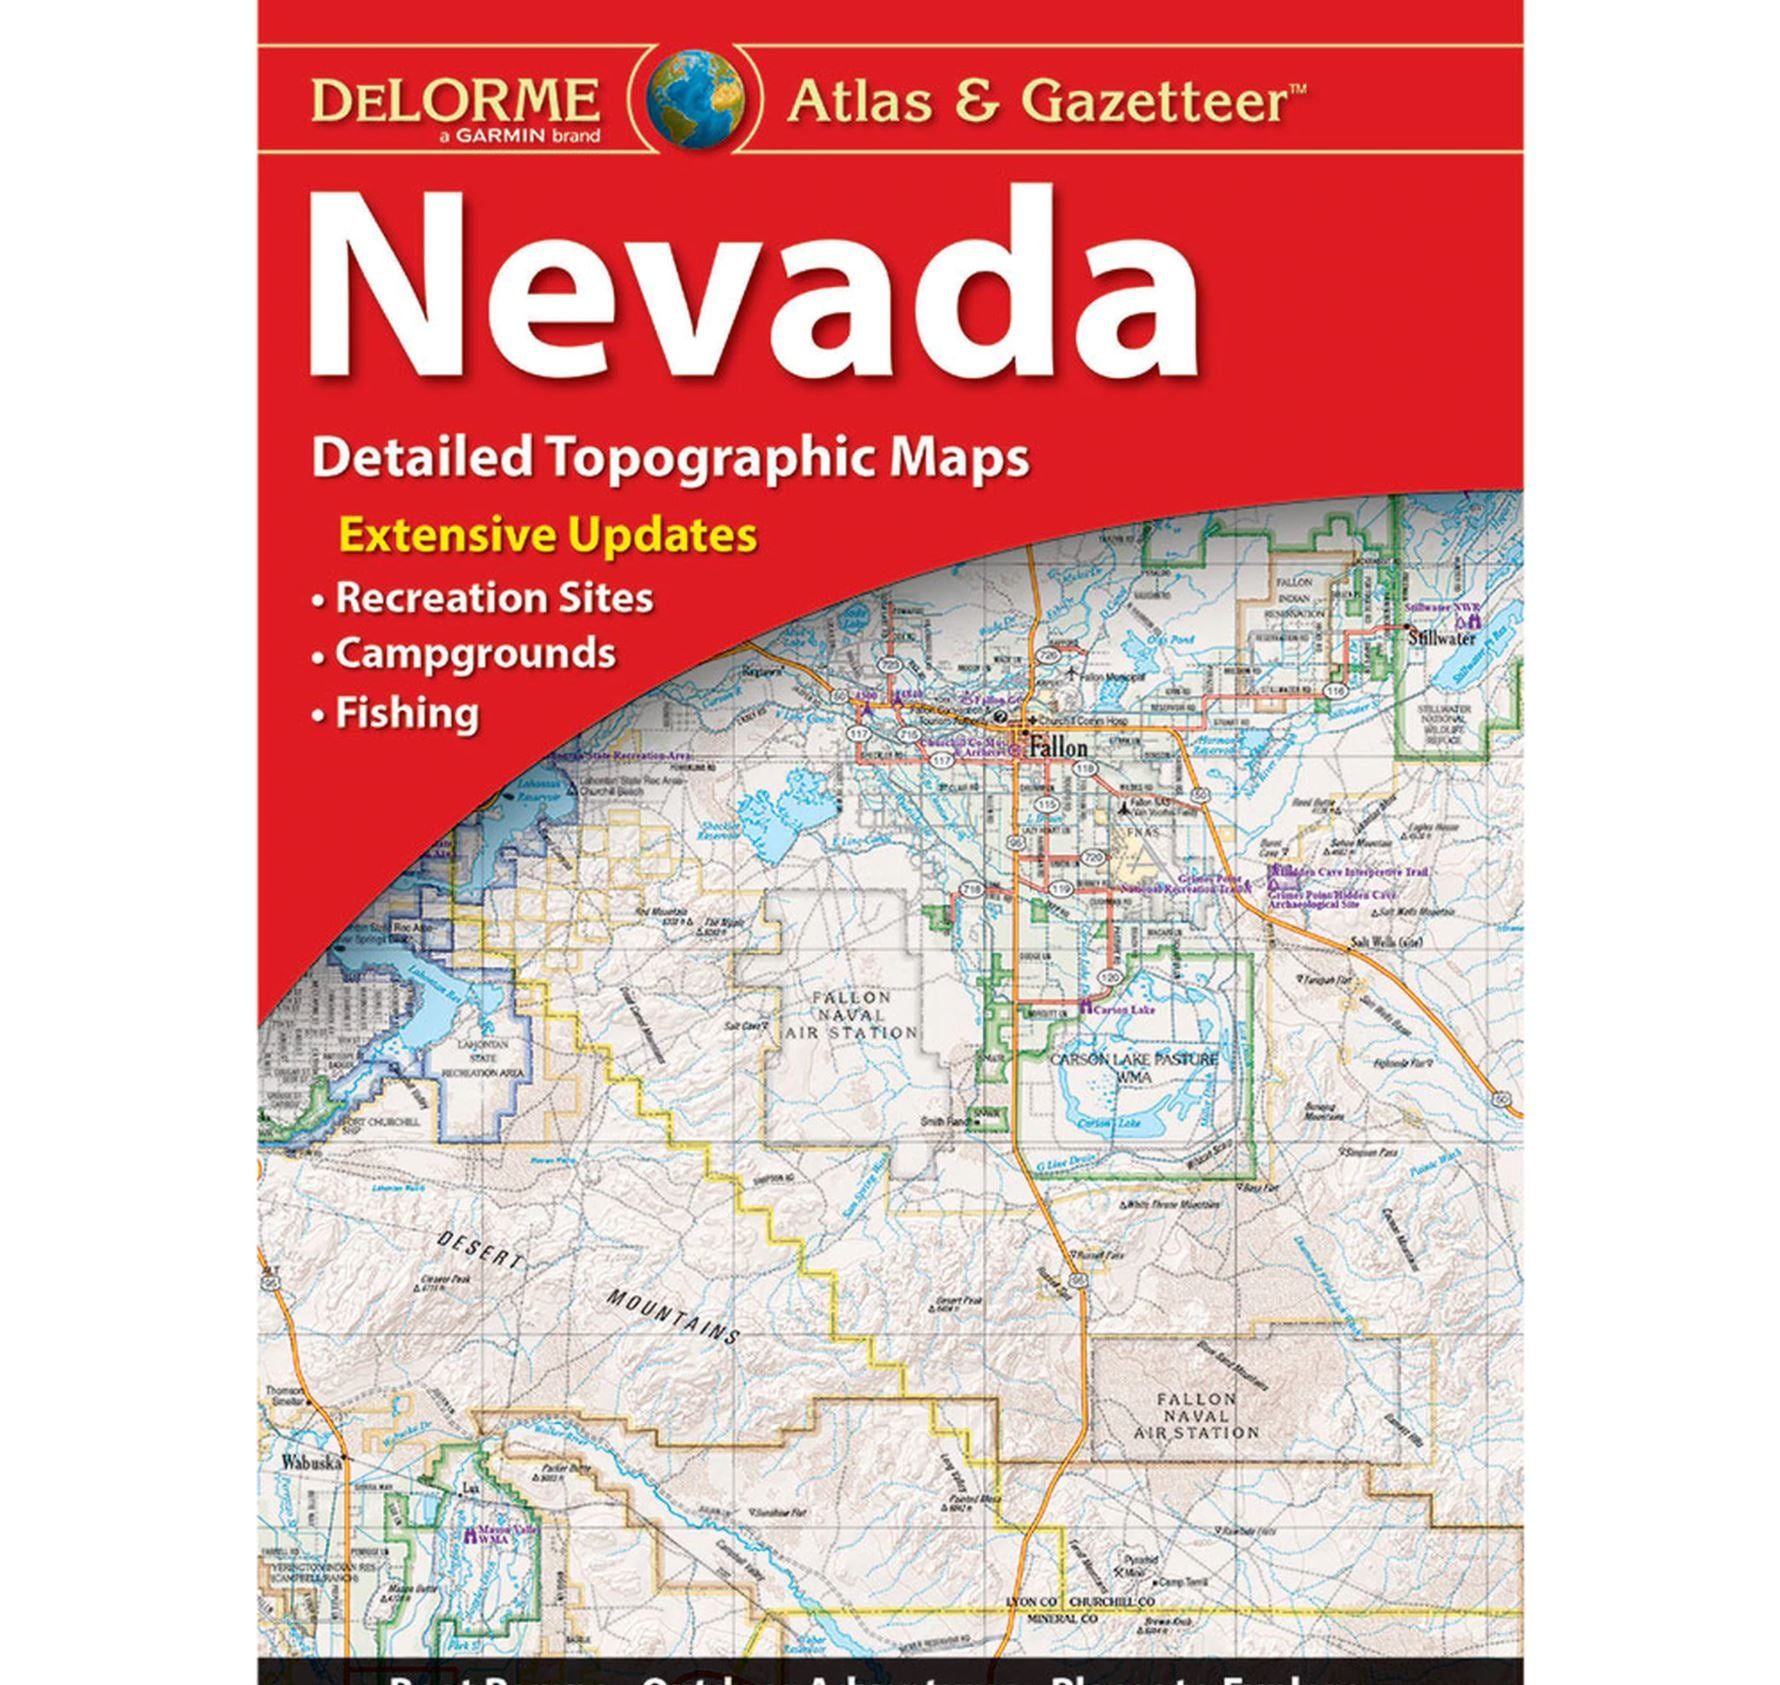 The cover of the nevada delorme atlas